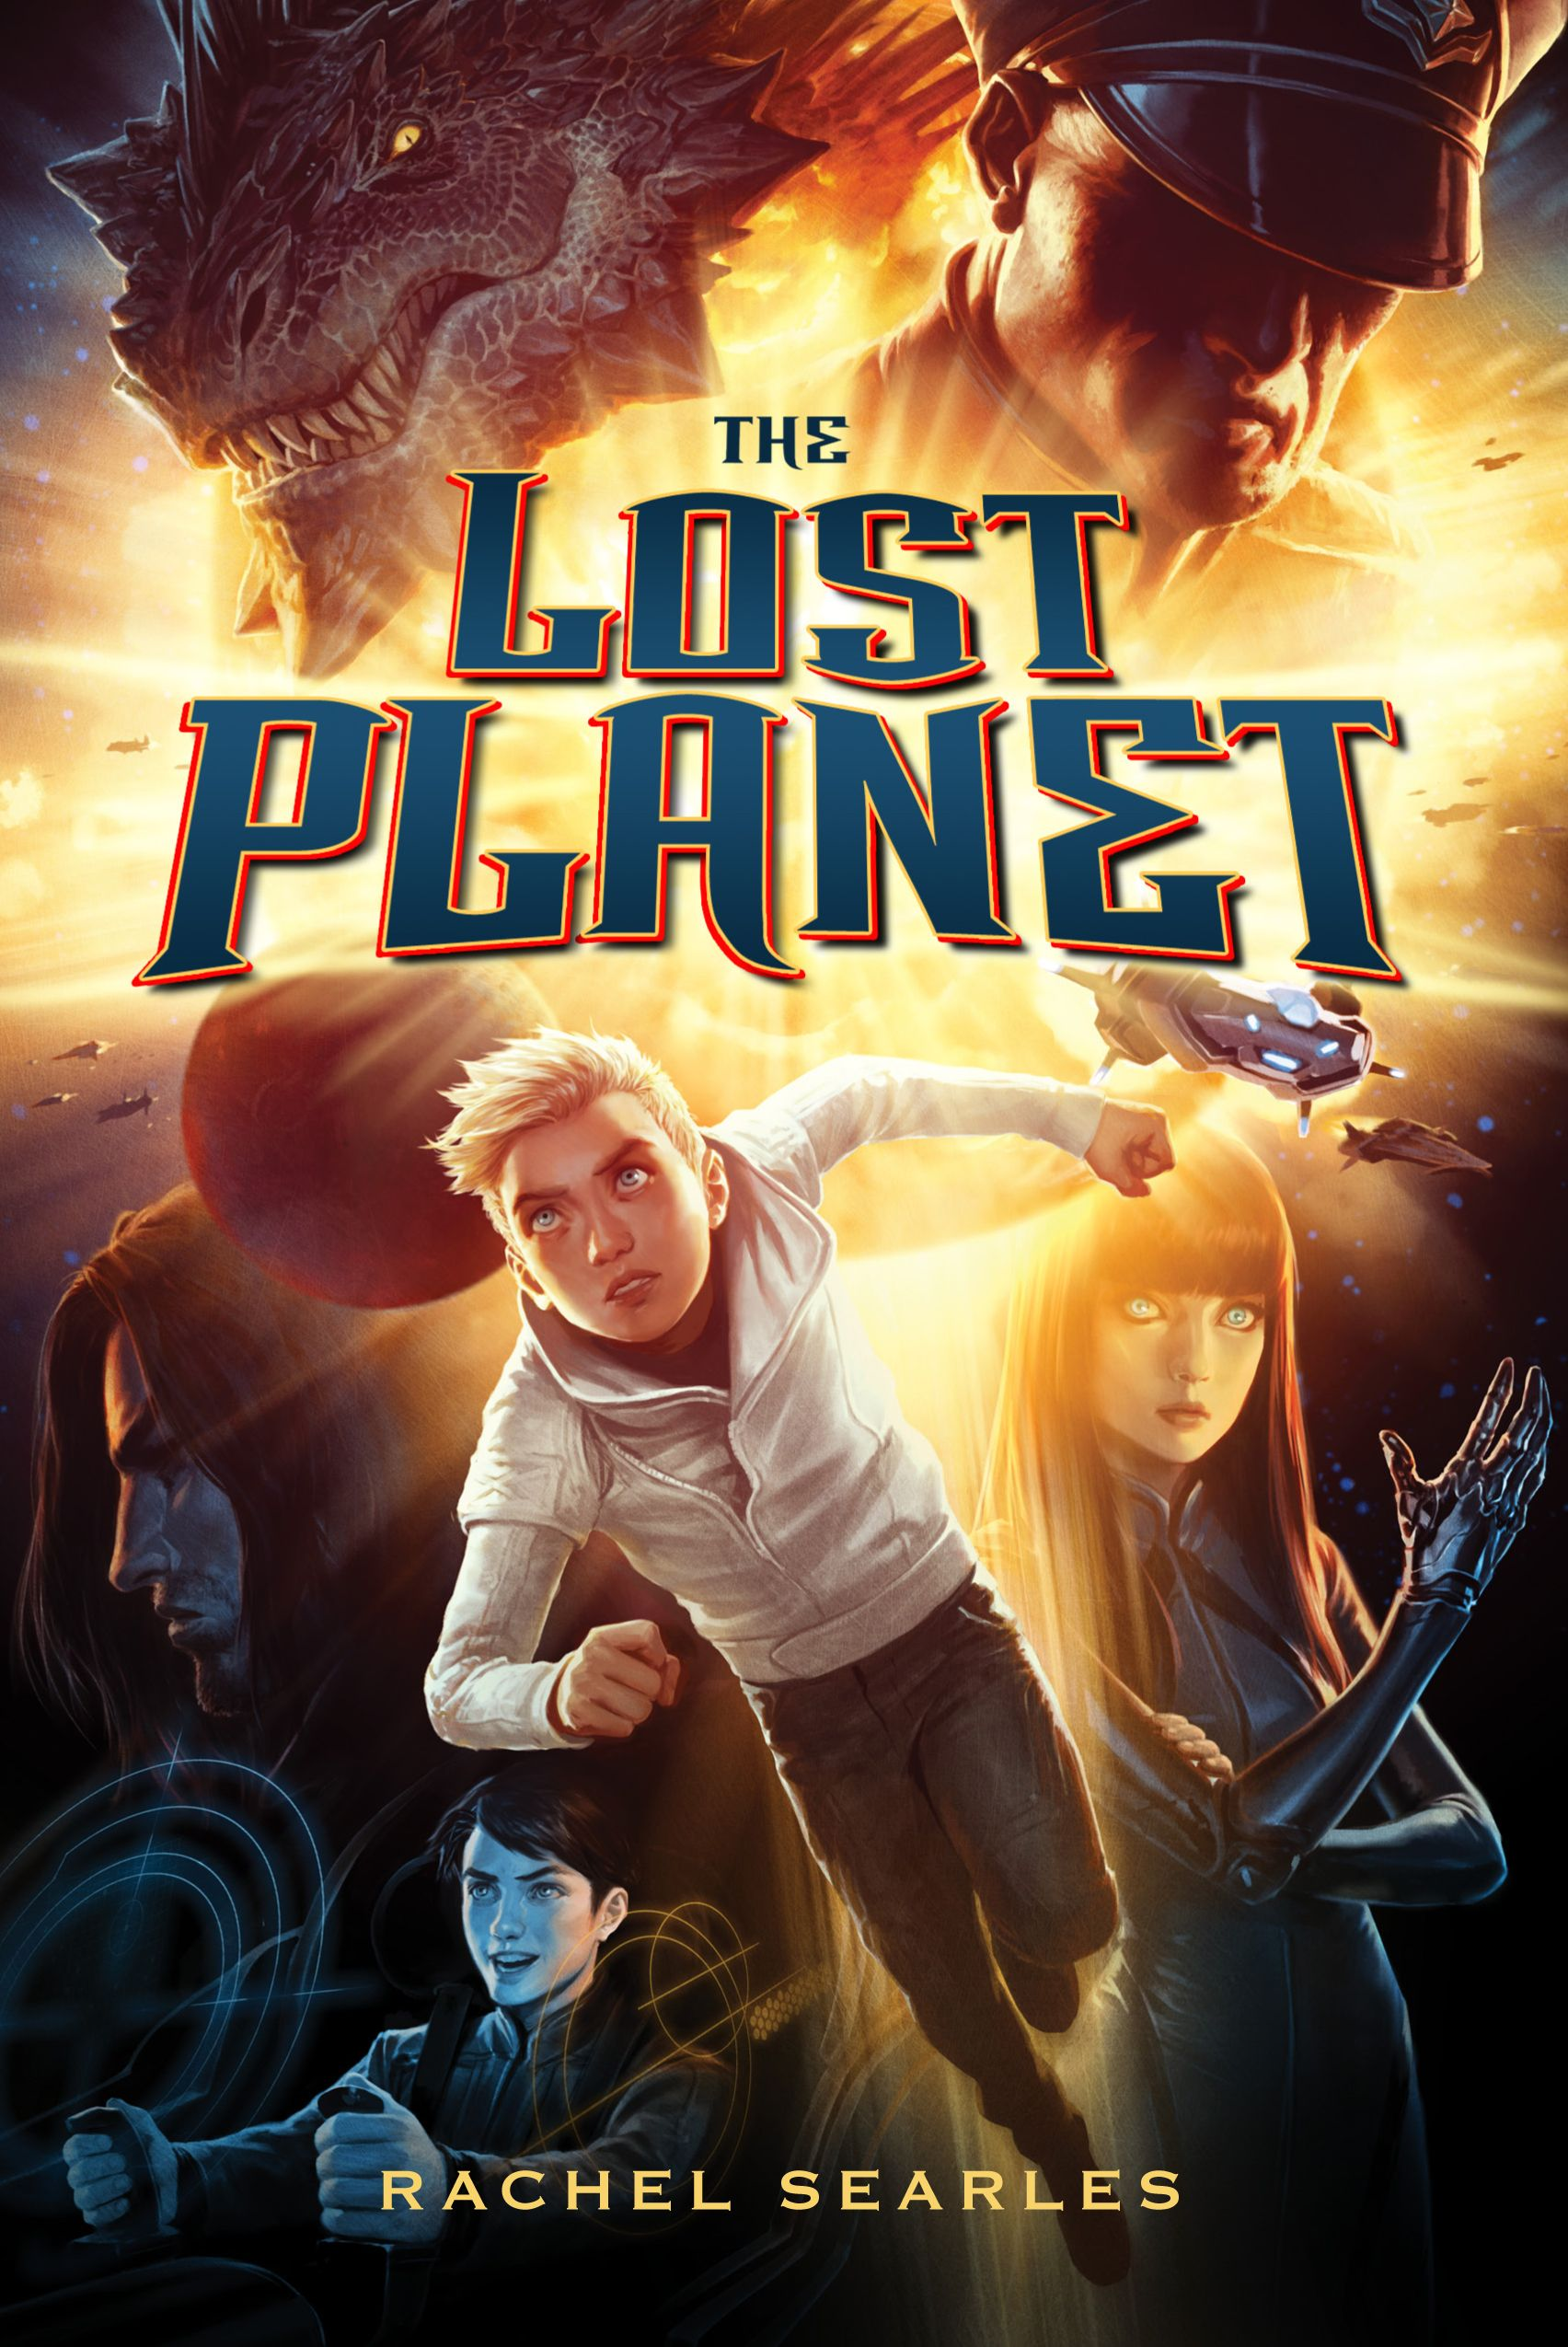 Interview with Rachel Searles, author of Lost Planet.